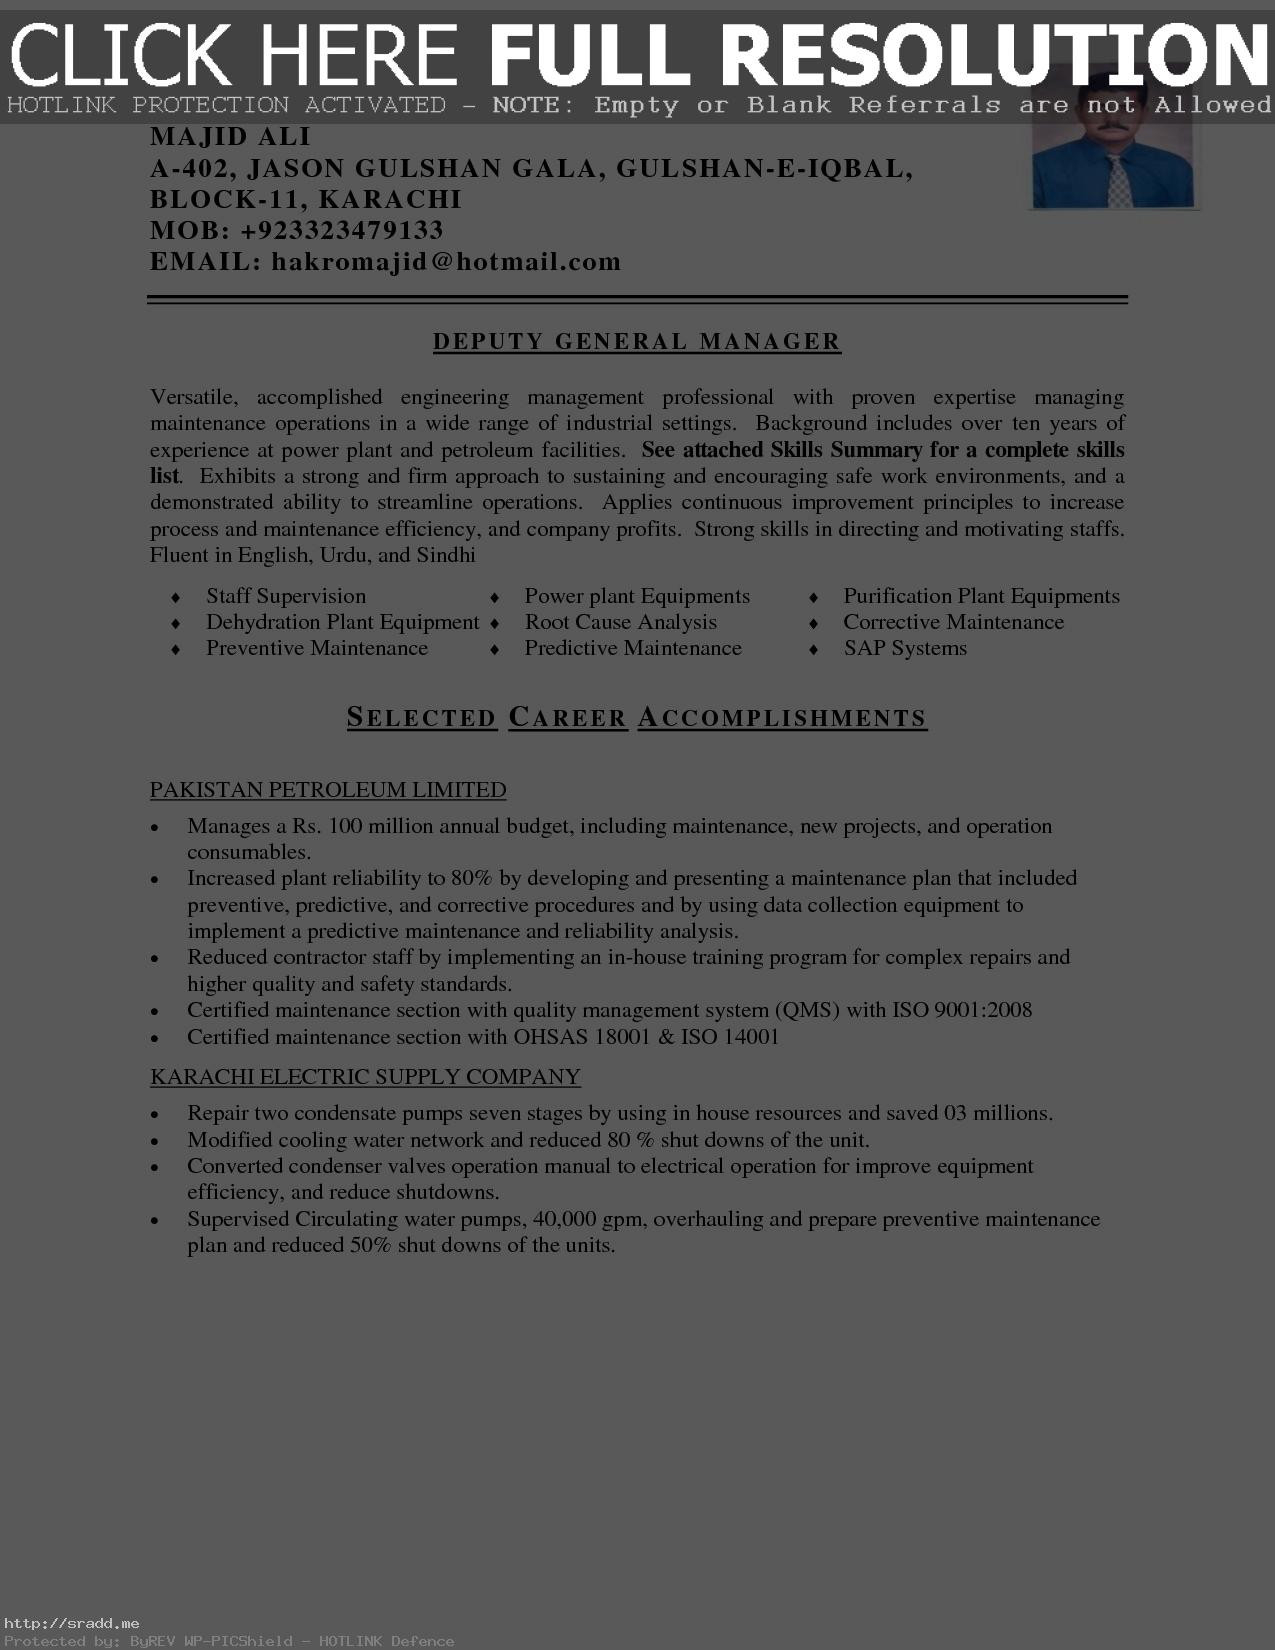 Electrical Engineer Resume Template - Electrical Engineer Resume Ressume Template Lovely Type Resume